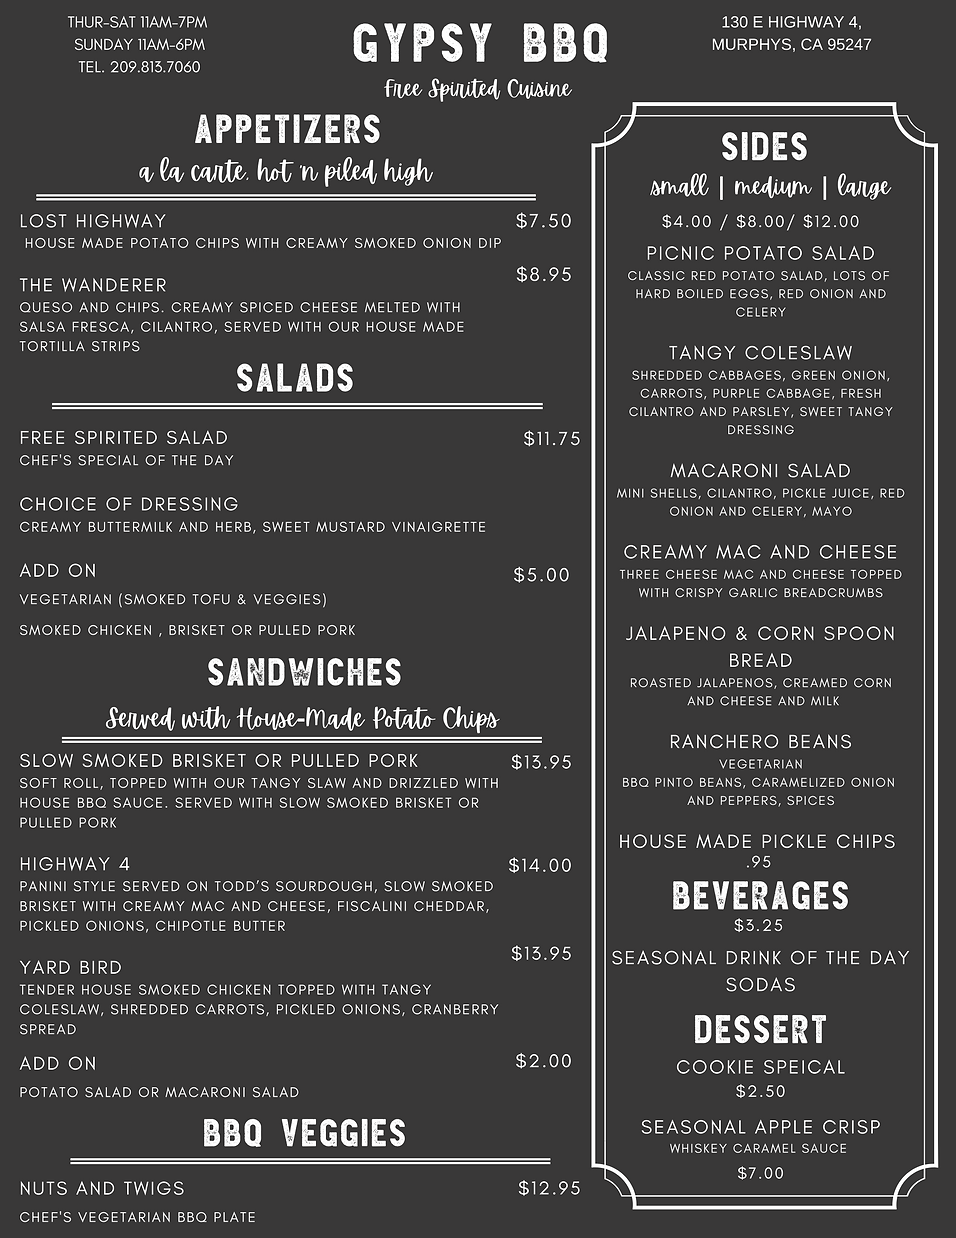 Big Gypsy BBQ Menu 44w X 57h.png